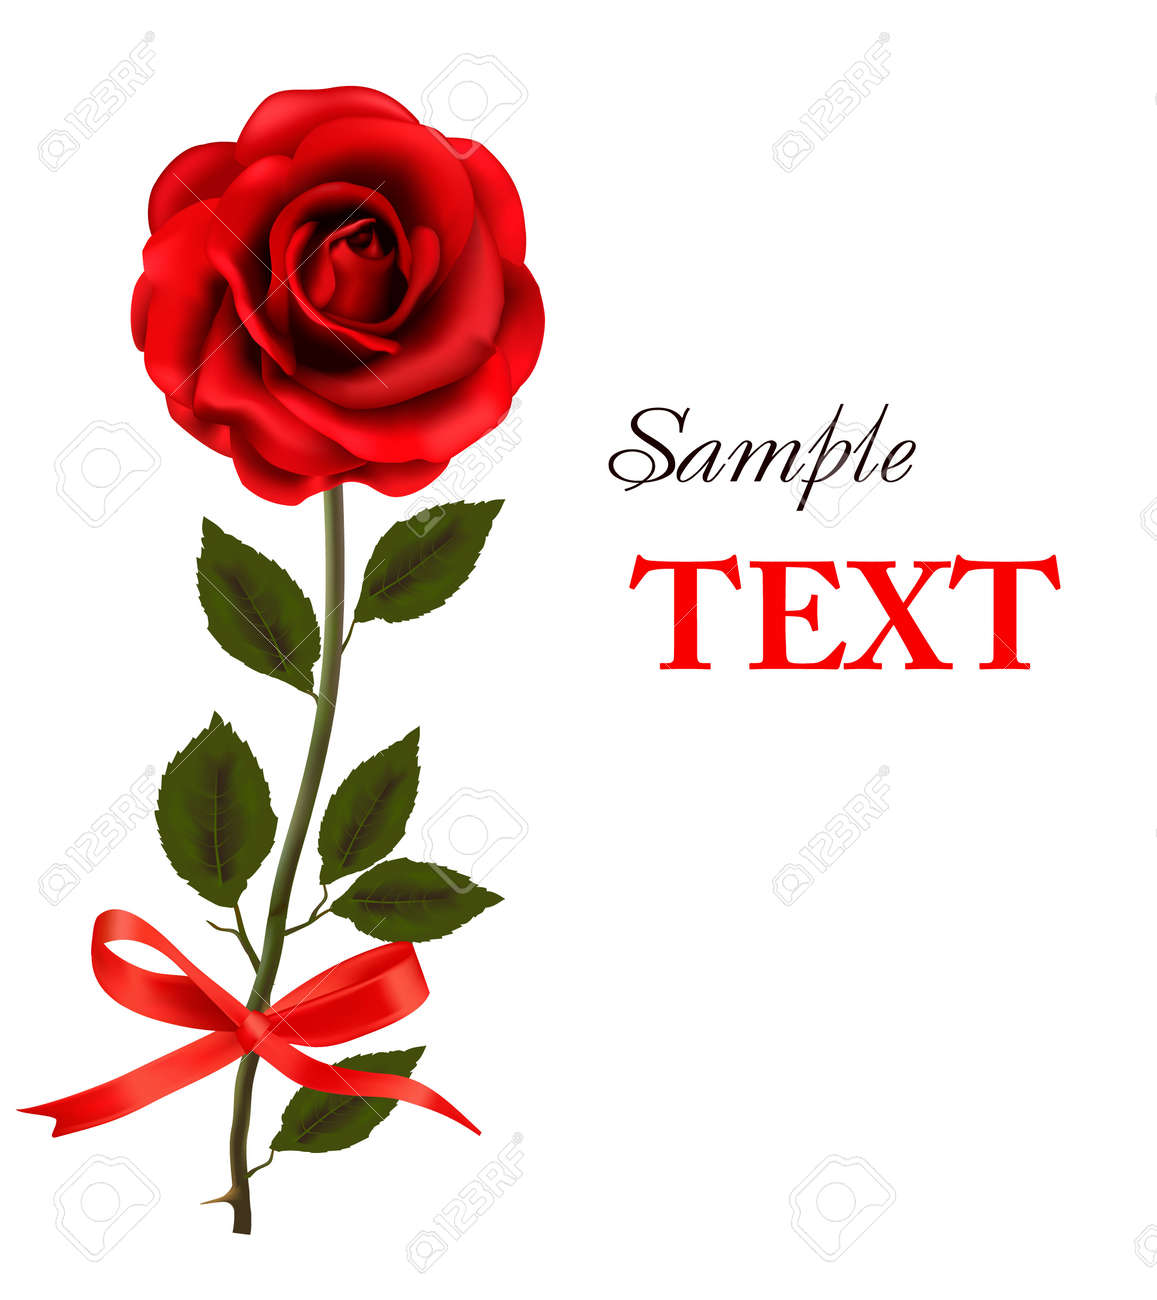 beautiful red rose on a white background. Stock Vector - 11098555